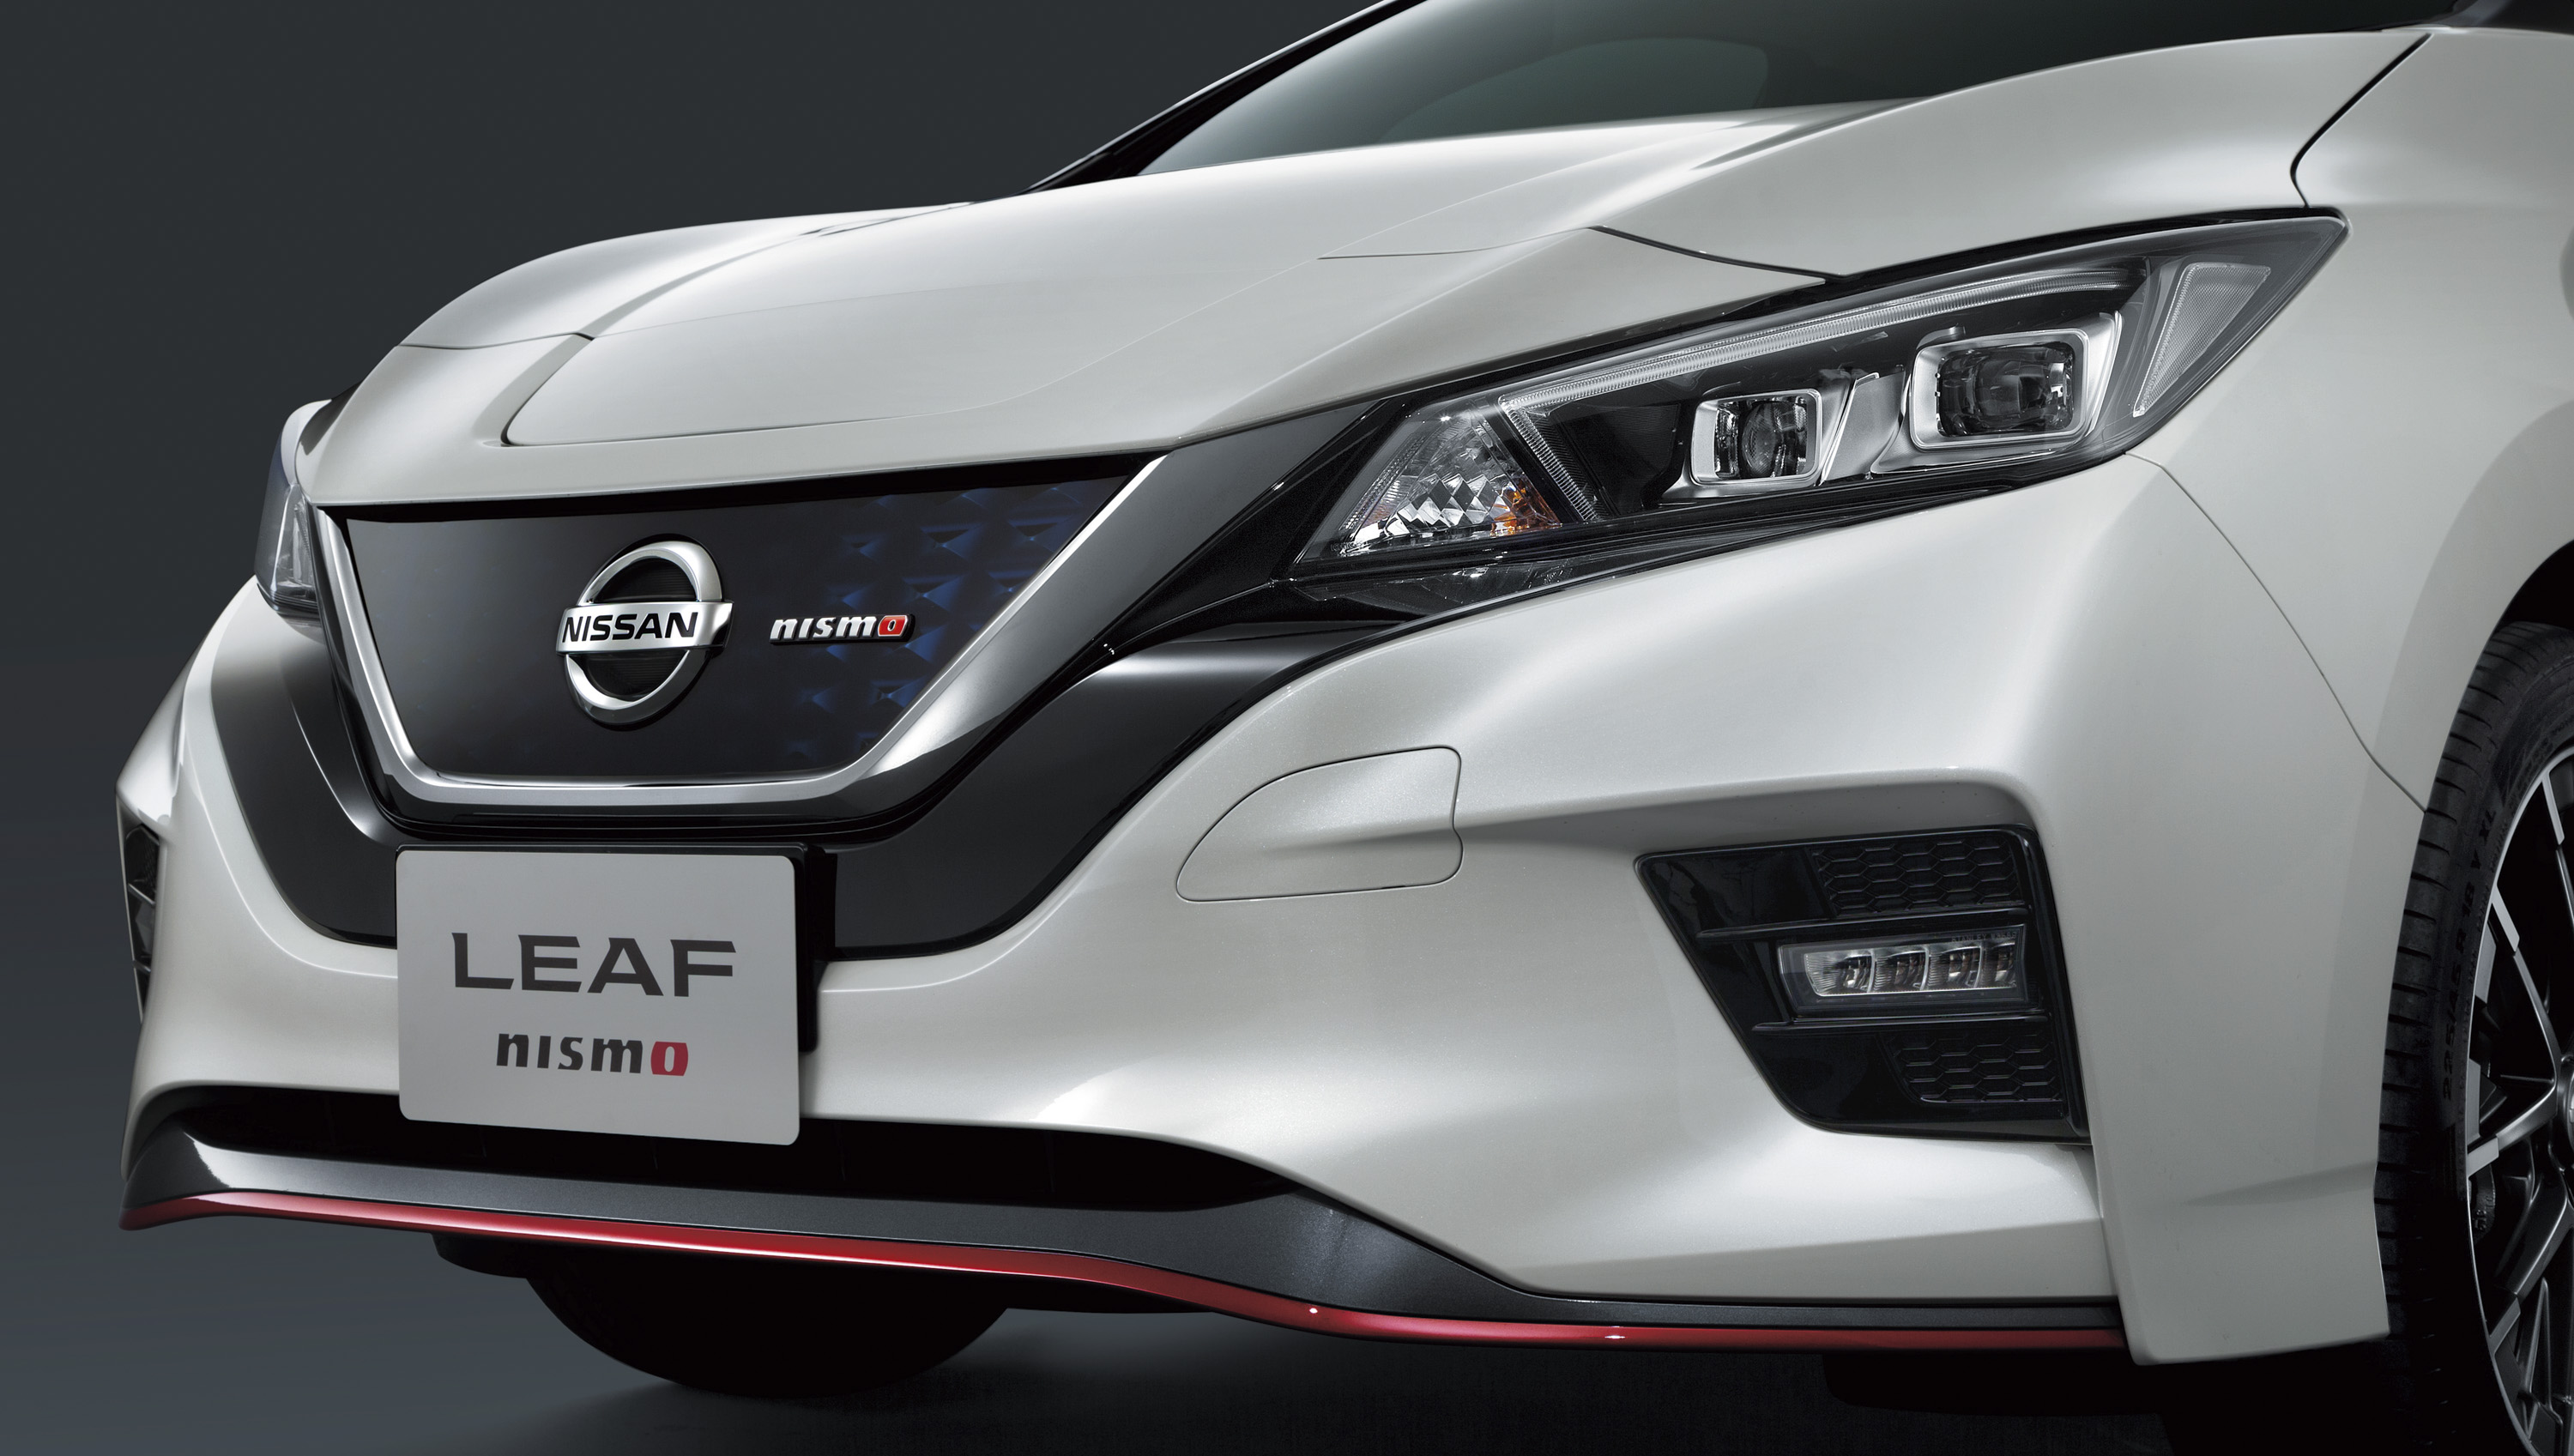 nissan leaf nismo headlights wallpaper 65969